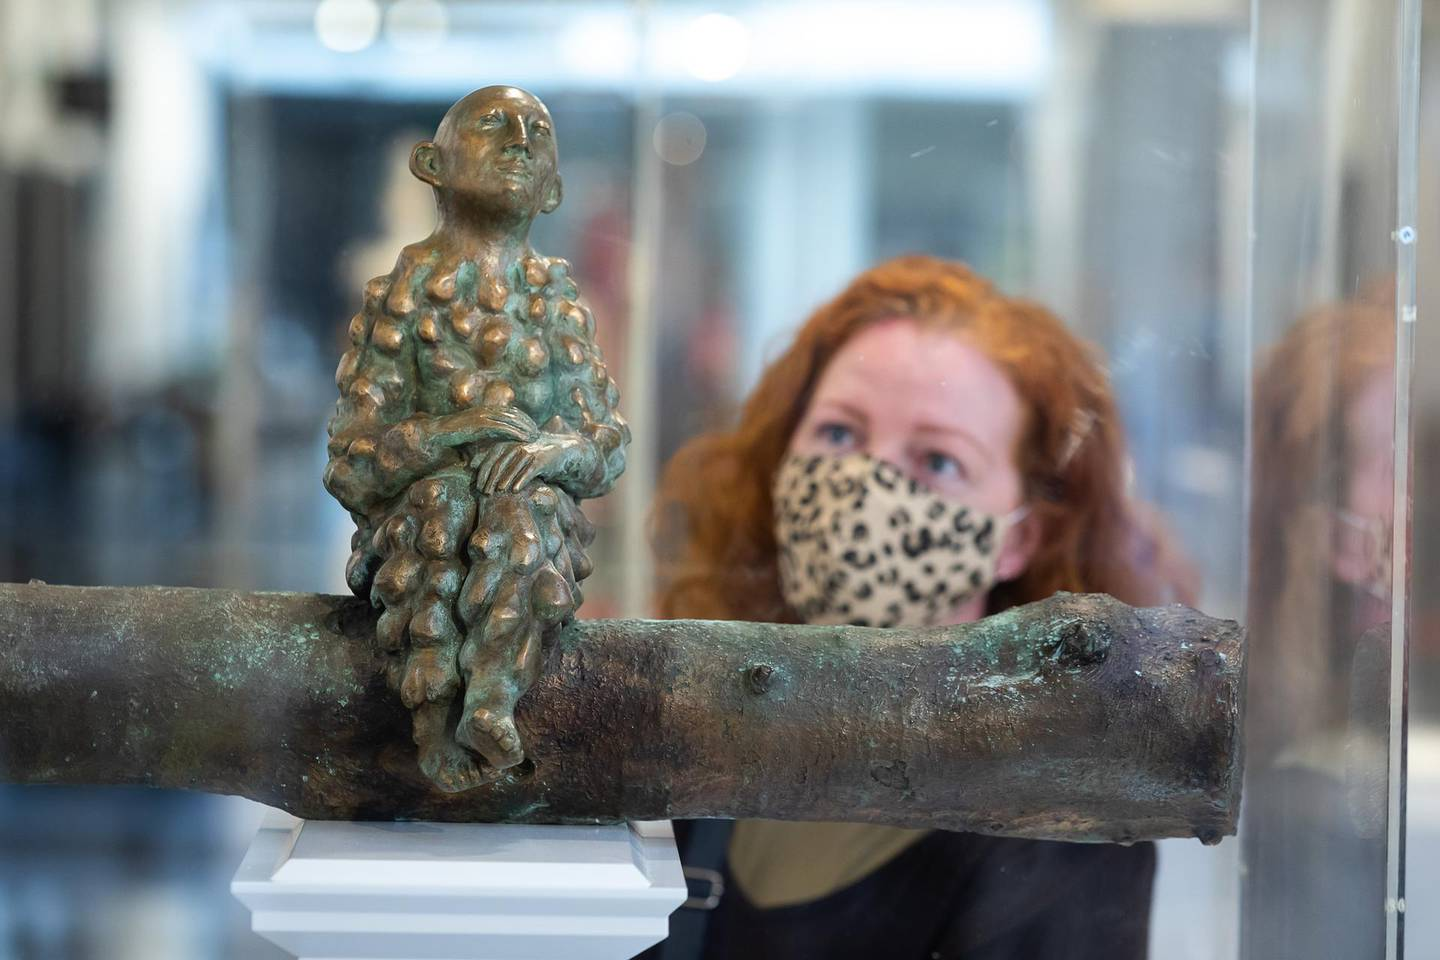 LONDON, ENGLAND - MAY 24:  A visitor looks at 'Bumpman for Trafalgar Square' by artist Paloma Varga Weisz, one of six proposals on display at the announcement of the Fourth Plinth shortlisted artworks at the National Gallery on May 24, 2021 in London, England.  The public are invited to have their say about the proposed artworks to help inform the decision of the Fourth Plinth Commissioning Group who will announce two winning sculptures in late June, 2021.  (Photo by Tim P. Whitby/Getty Images)